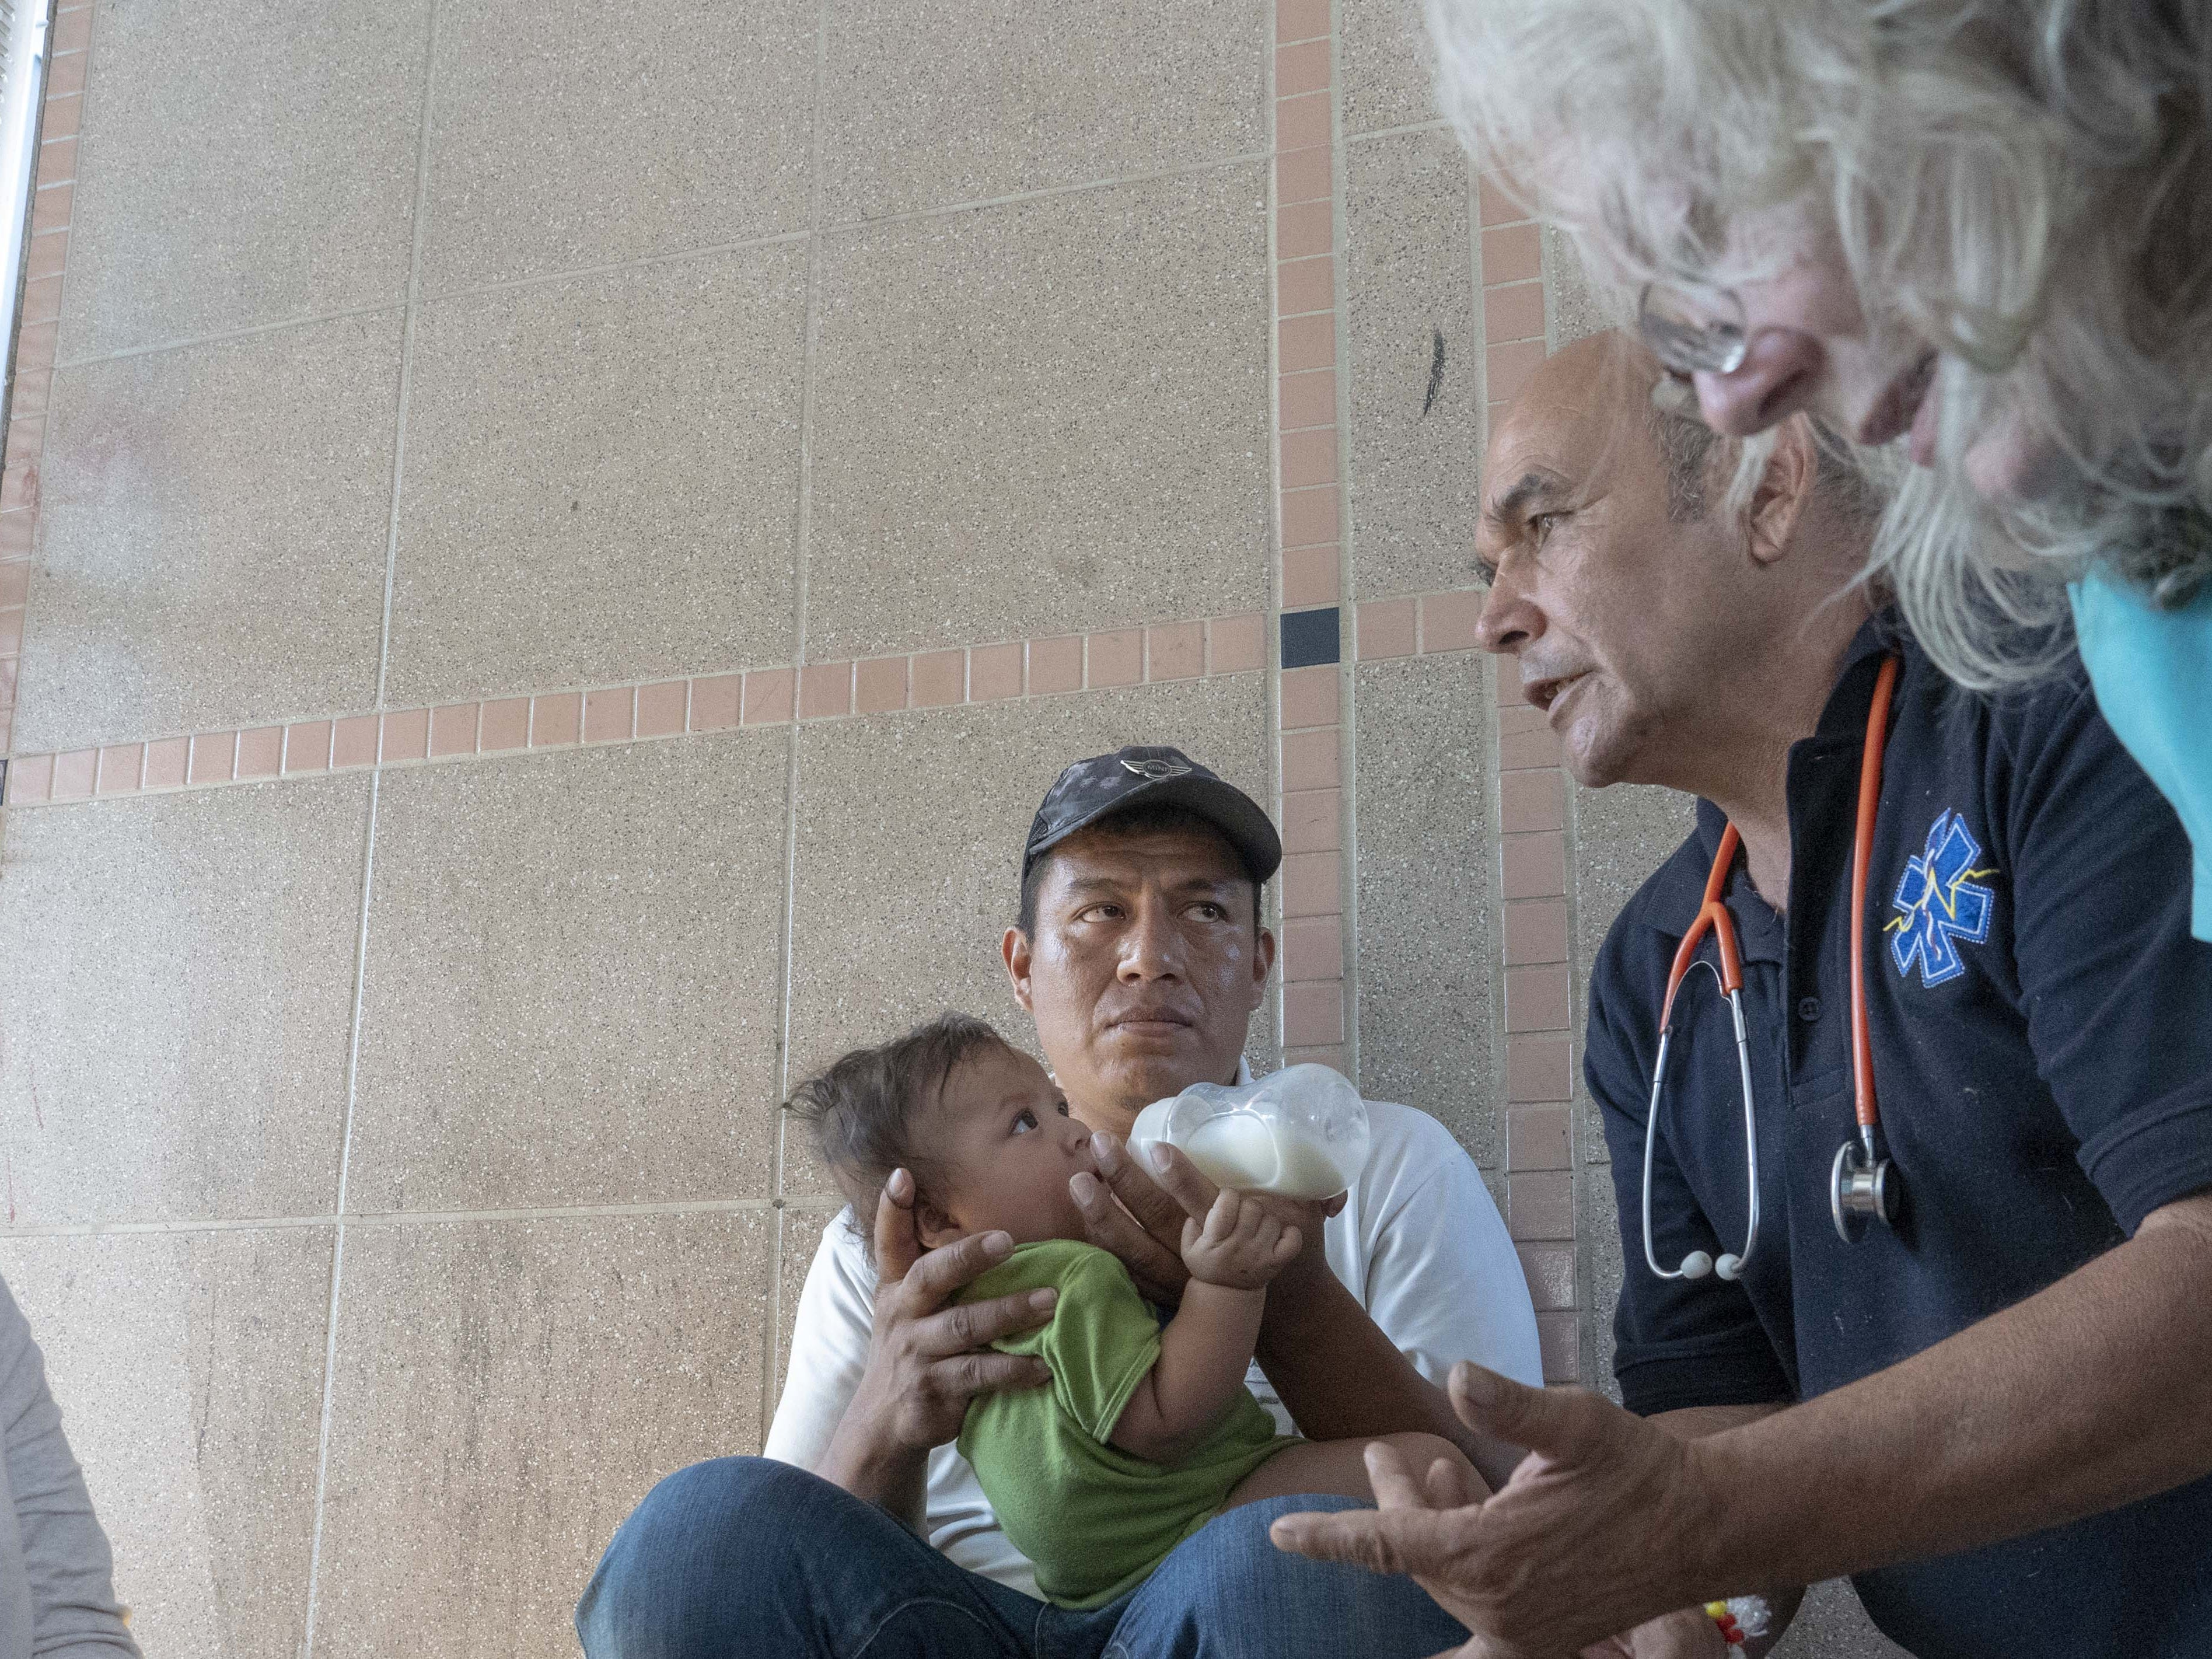 Elation Laguna Flores, Miriam Chino Gonzalez, and their baby, Ivan Laguna, get help from Frank Martin and Janice Pulliam at the DeConcini port of entry. The family from Guerrero, Mexico, were the only ones waiting in line to seek asylum at the border crossing at the time.